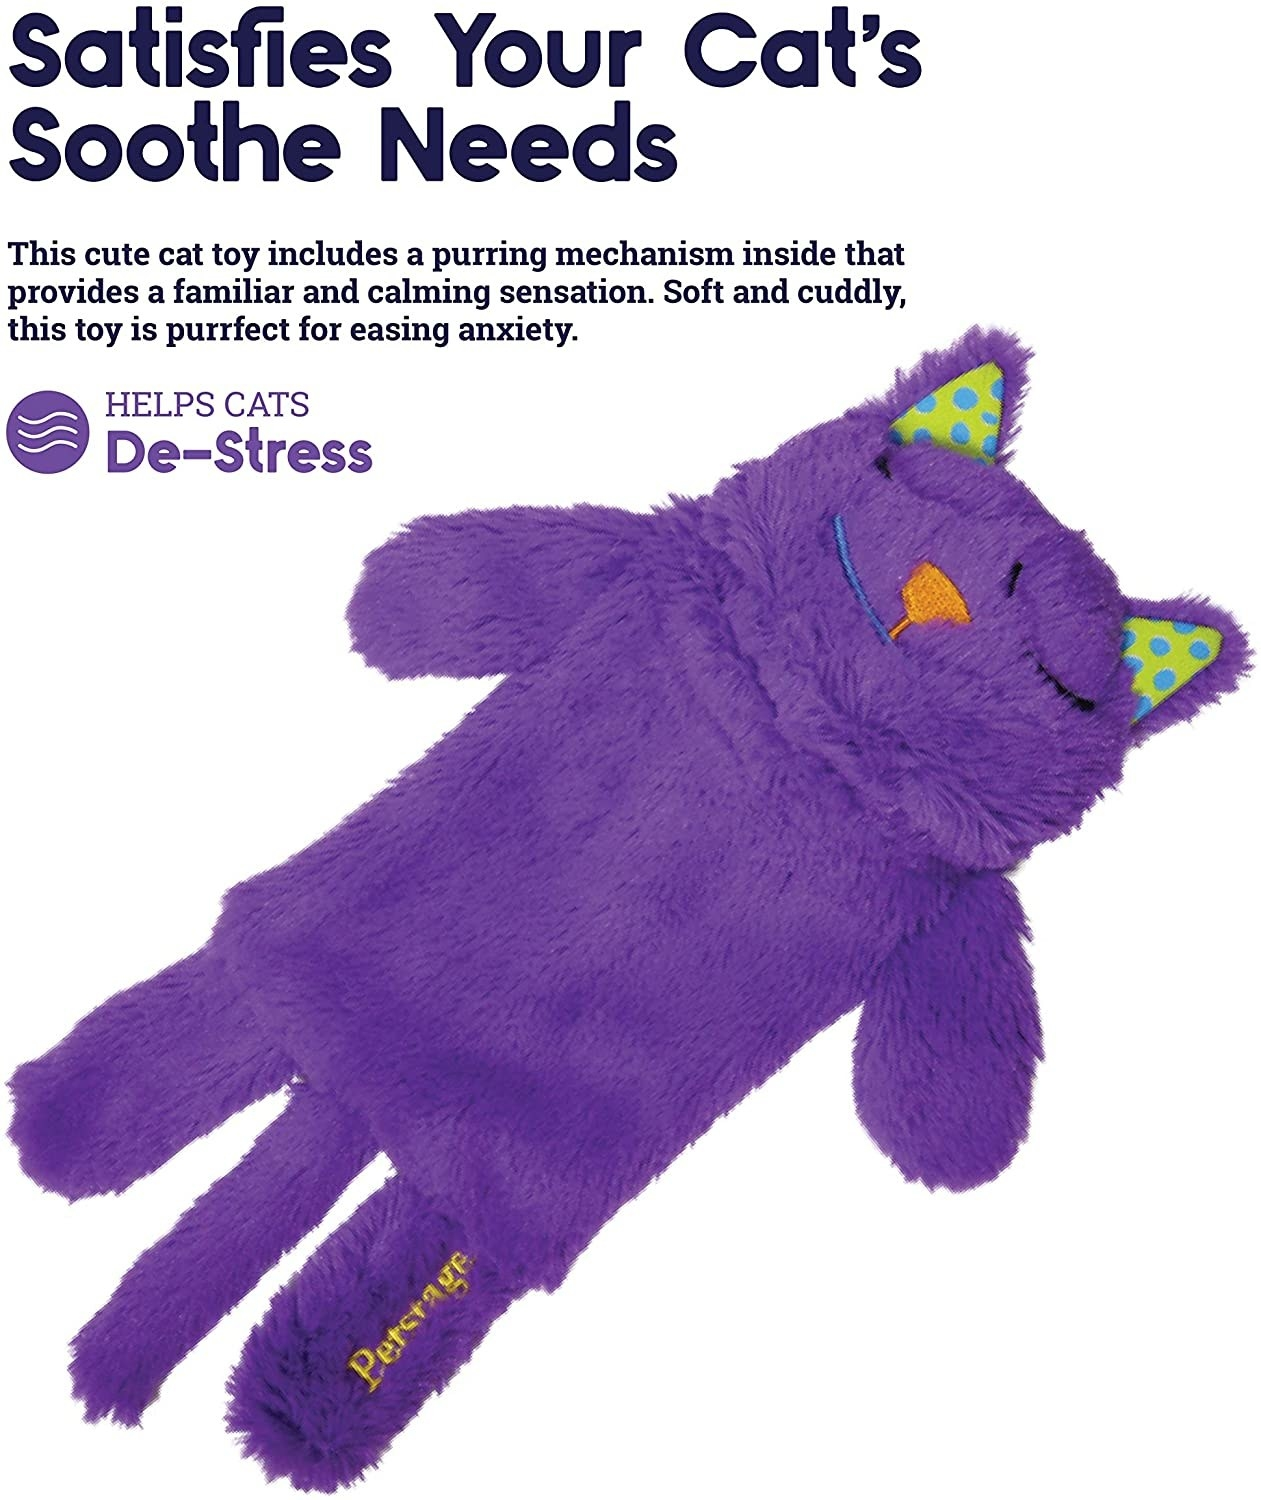 The furry purple cat-shaped toy